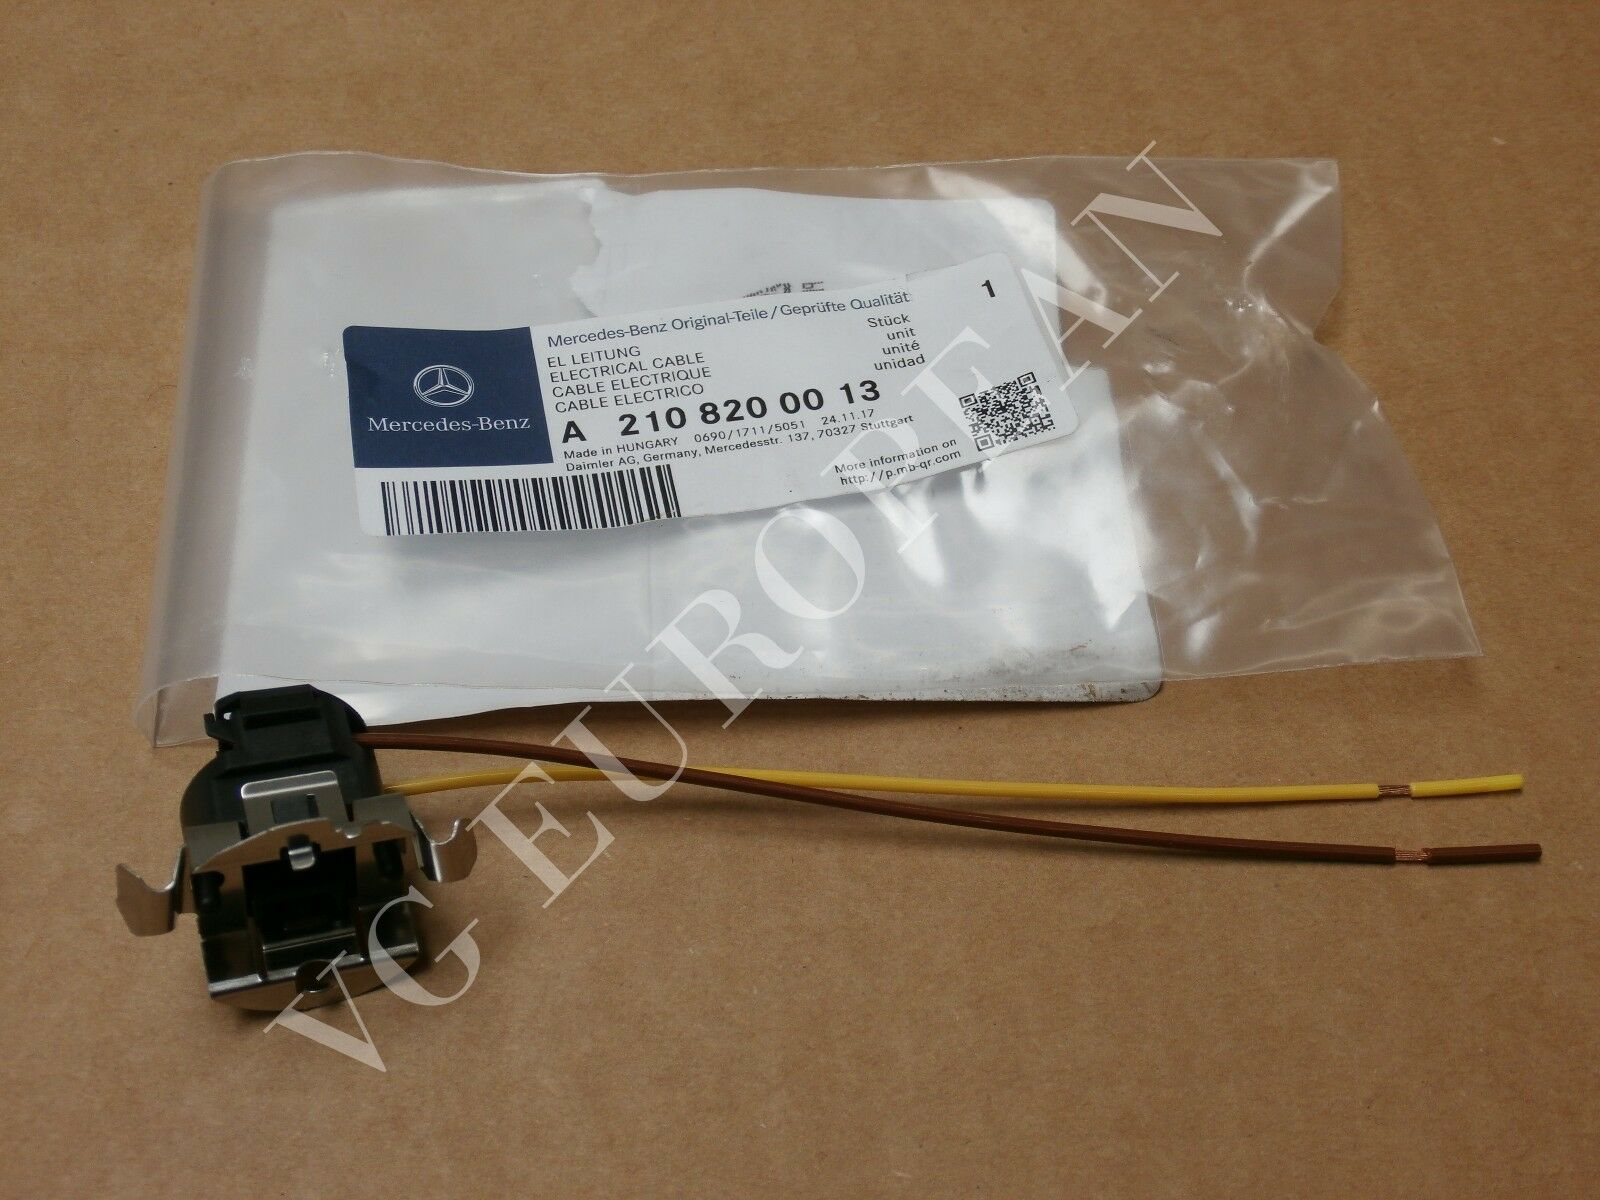 Mercedes Benz Genuine W210 E Class Headlight Wiring Harness Ford Expedition 2108200013 New